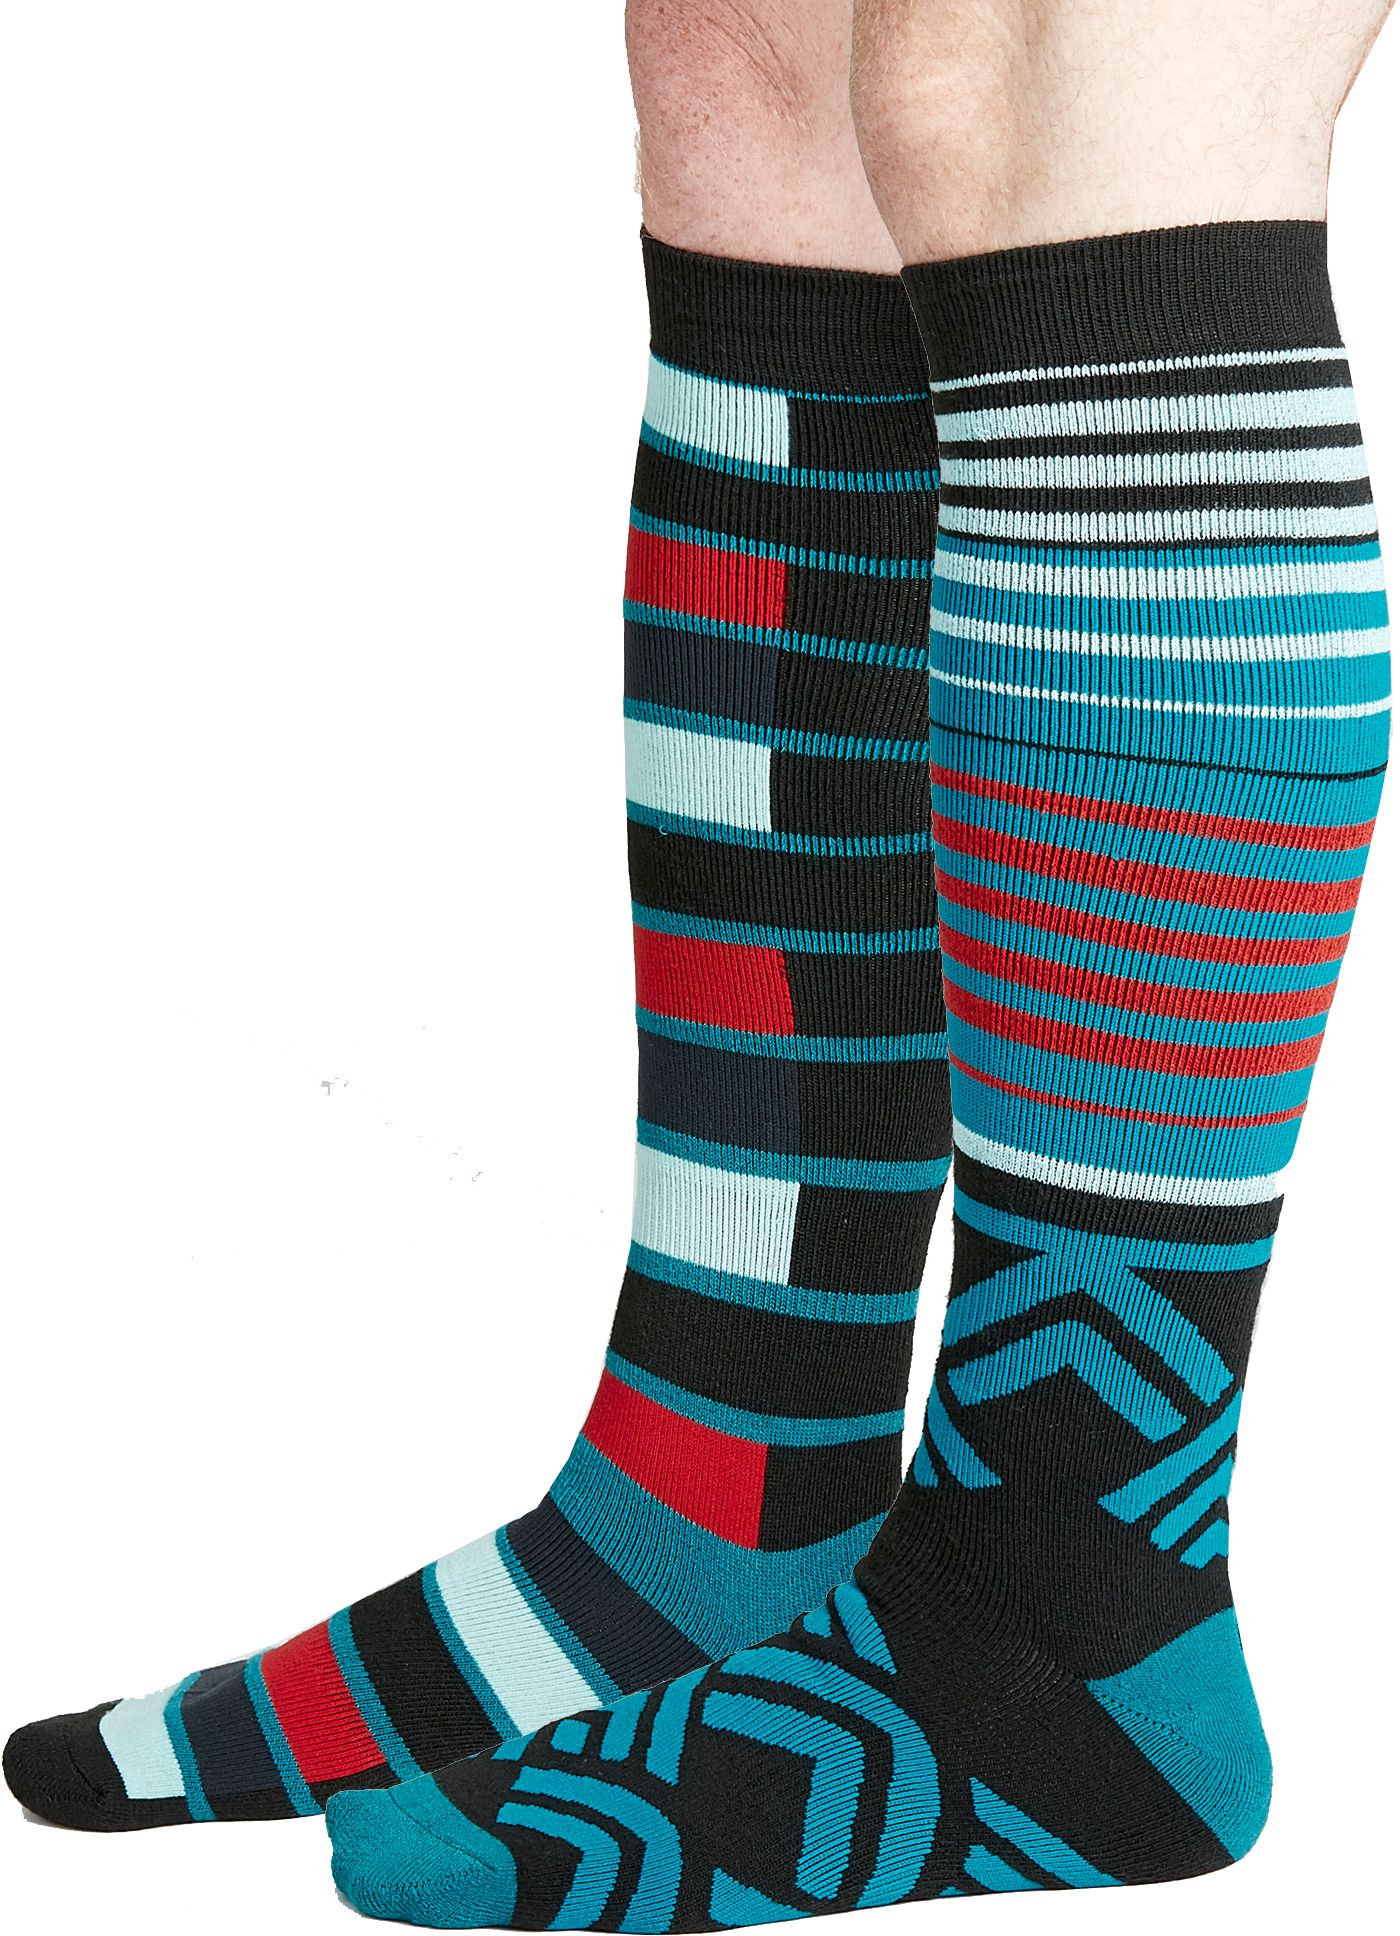 Alpine Design Men's Snow Sport Over-the-Calf Socks 2 Pack